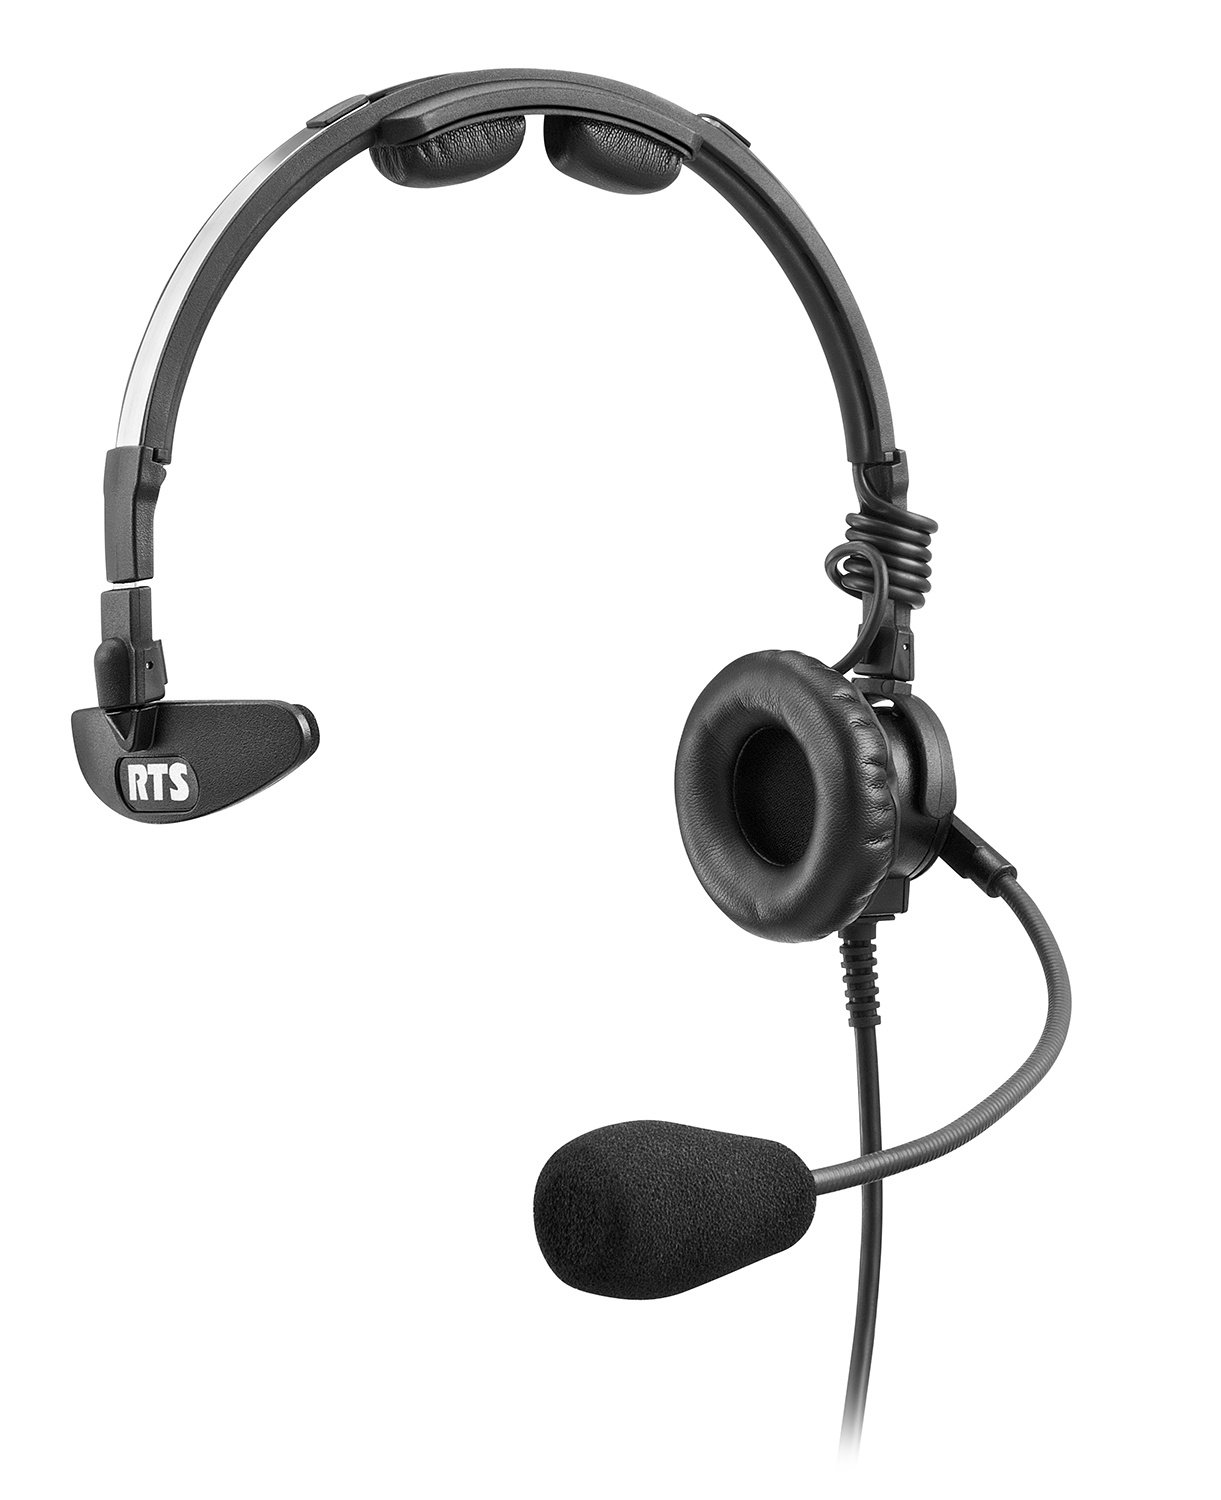 Single Sided Headset Microphone with A5M Connector